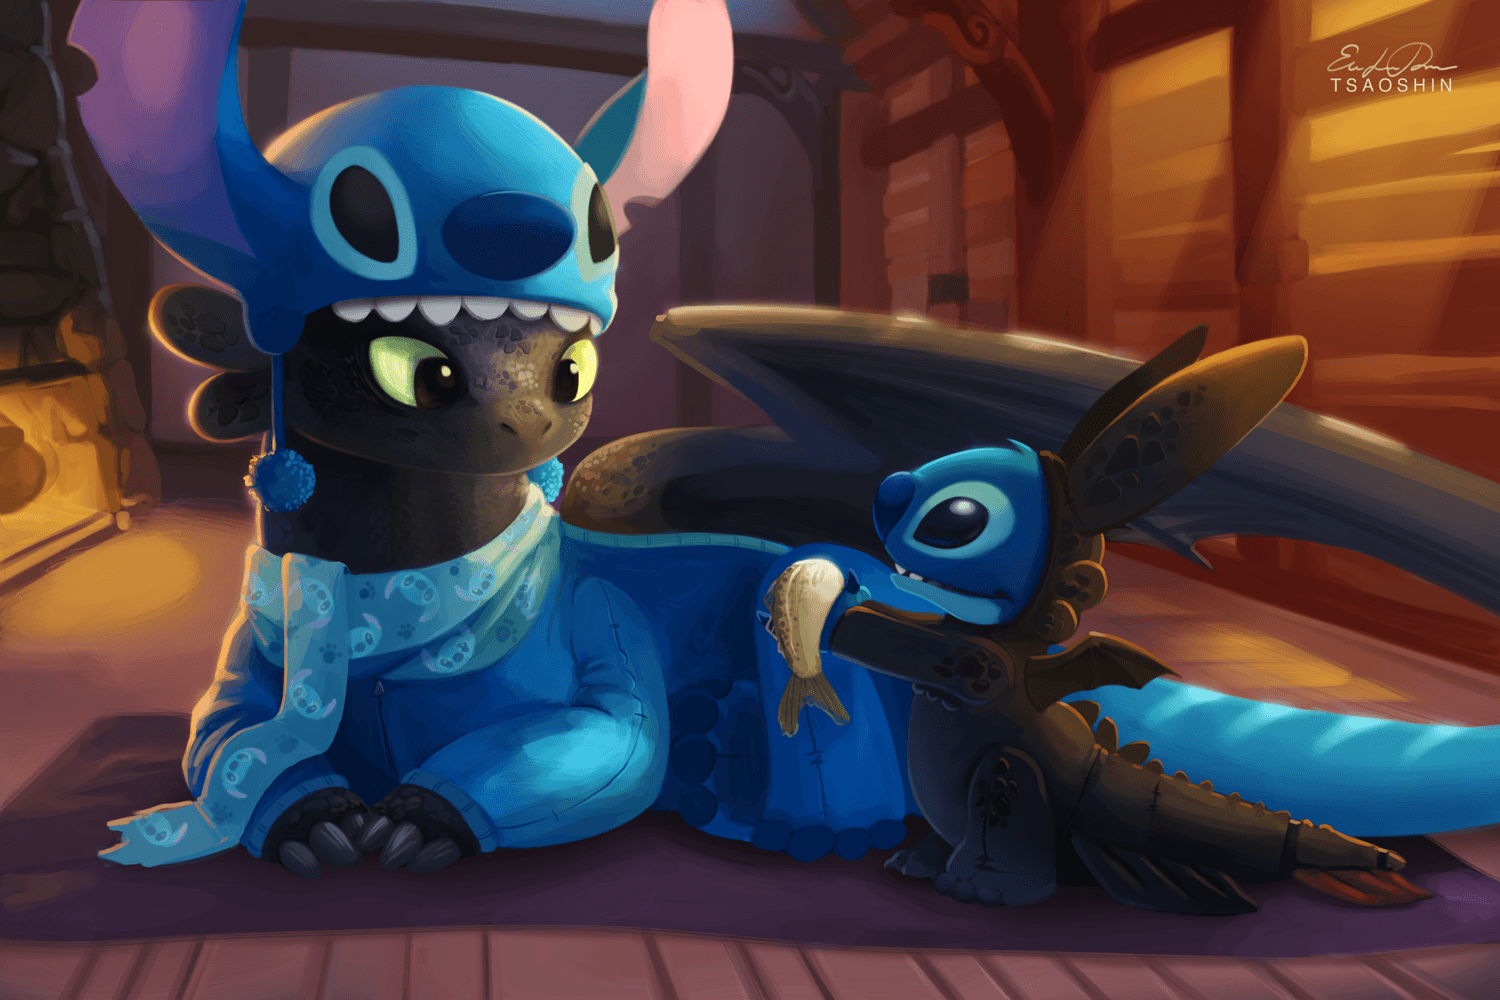 Toothless And Stitch Fondos de Escritorio